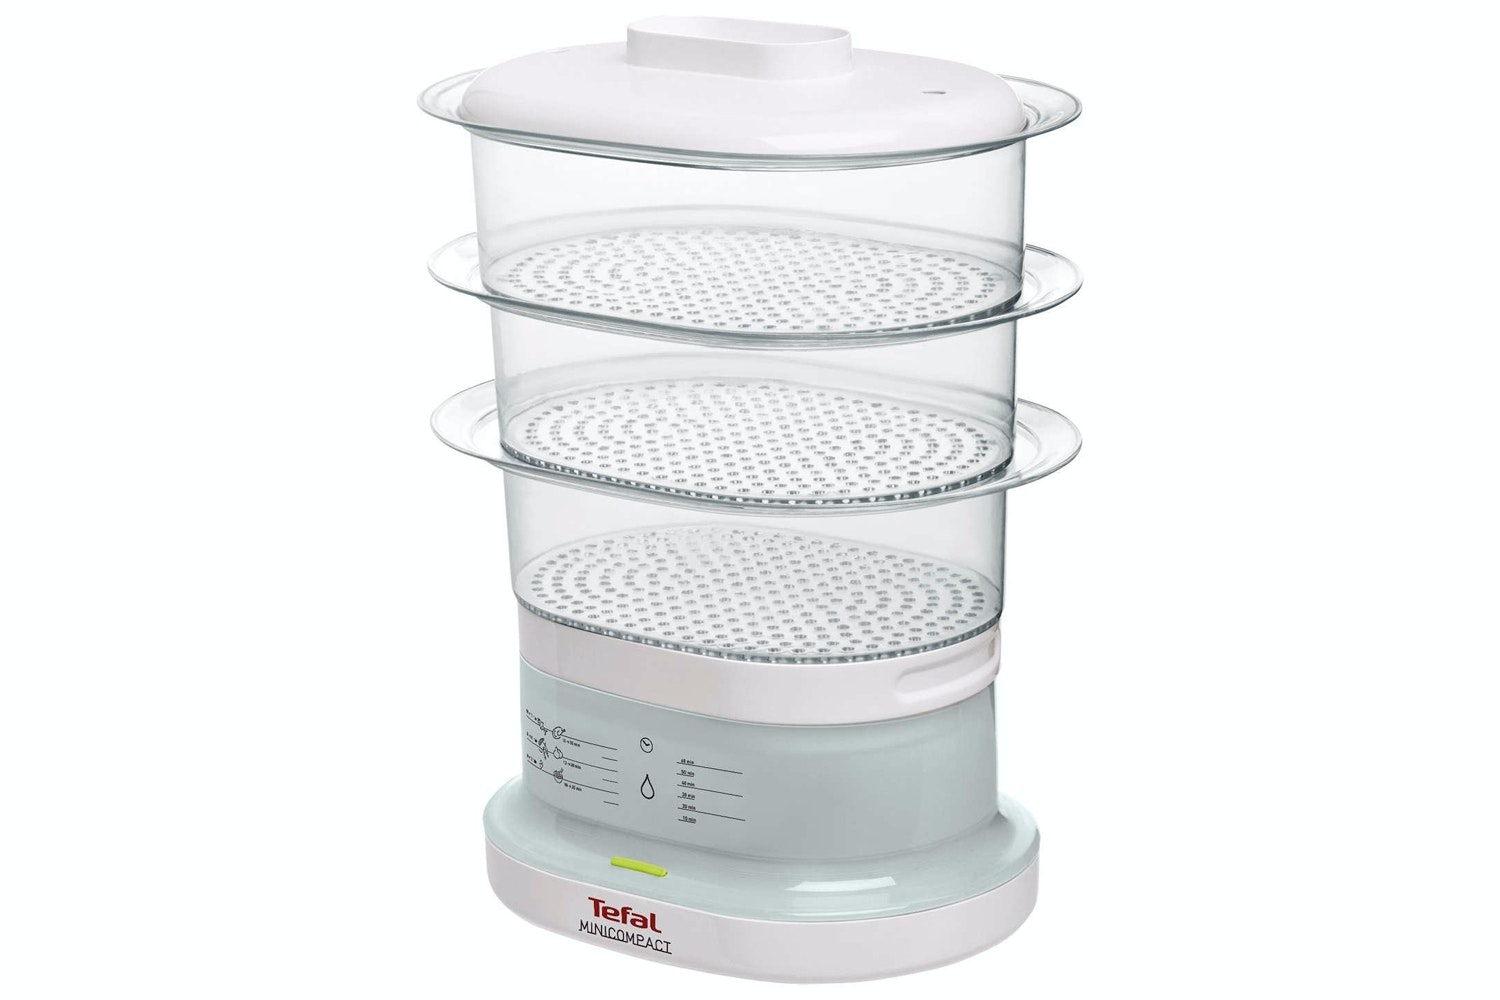 Tefal Compact Steamer